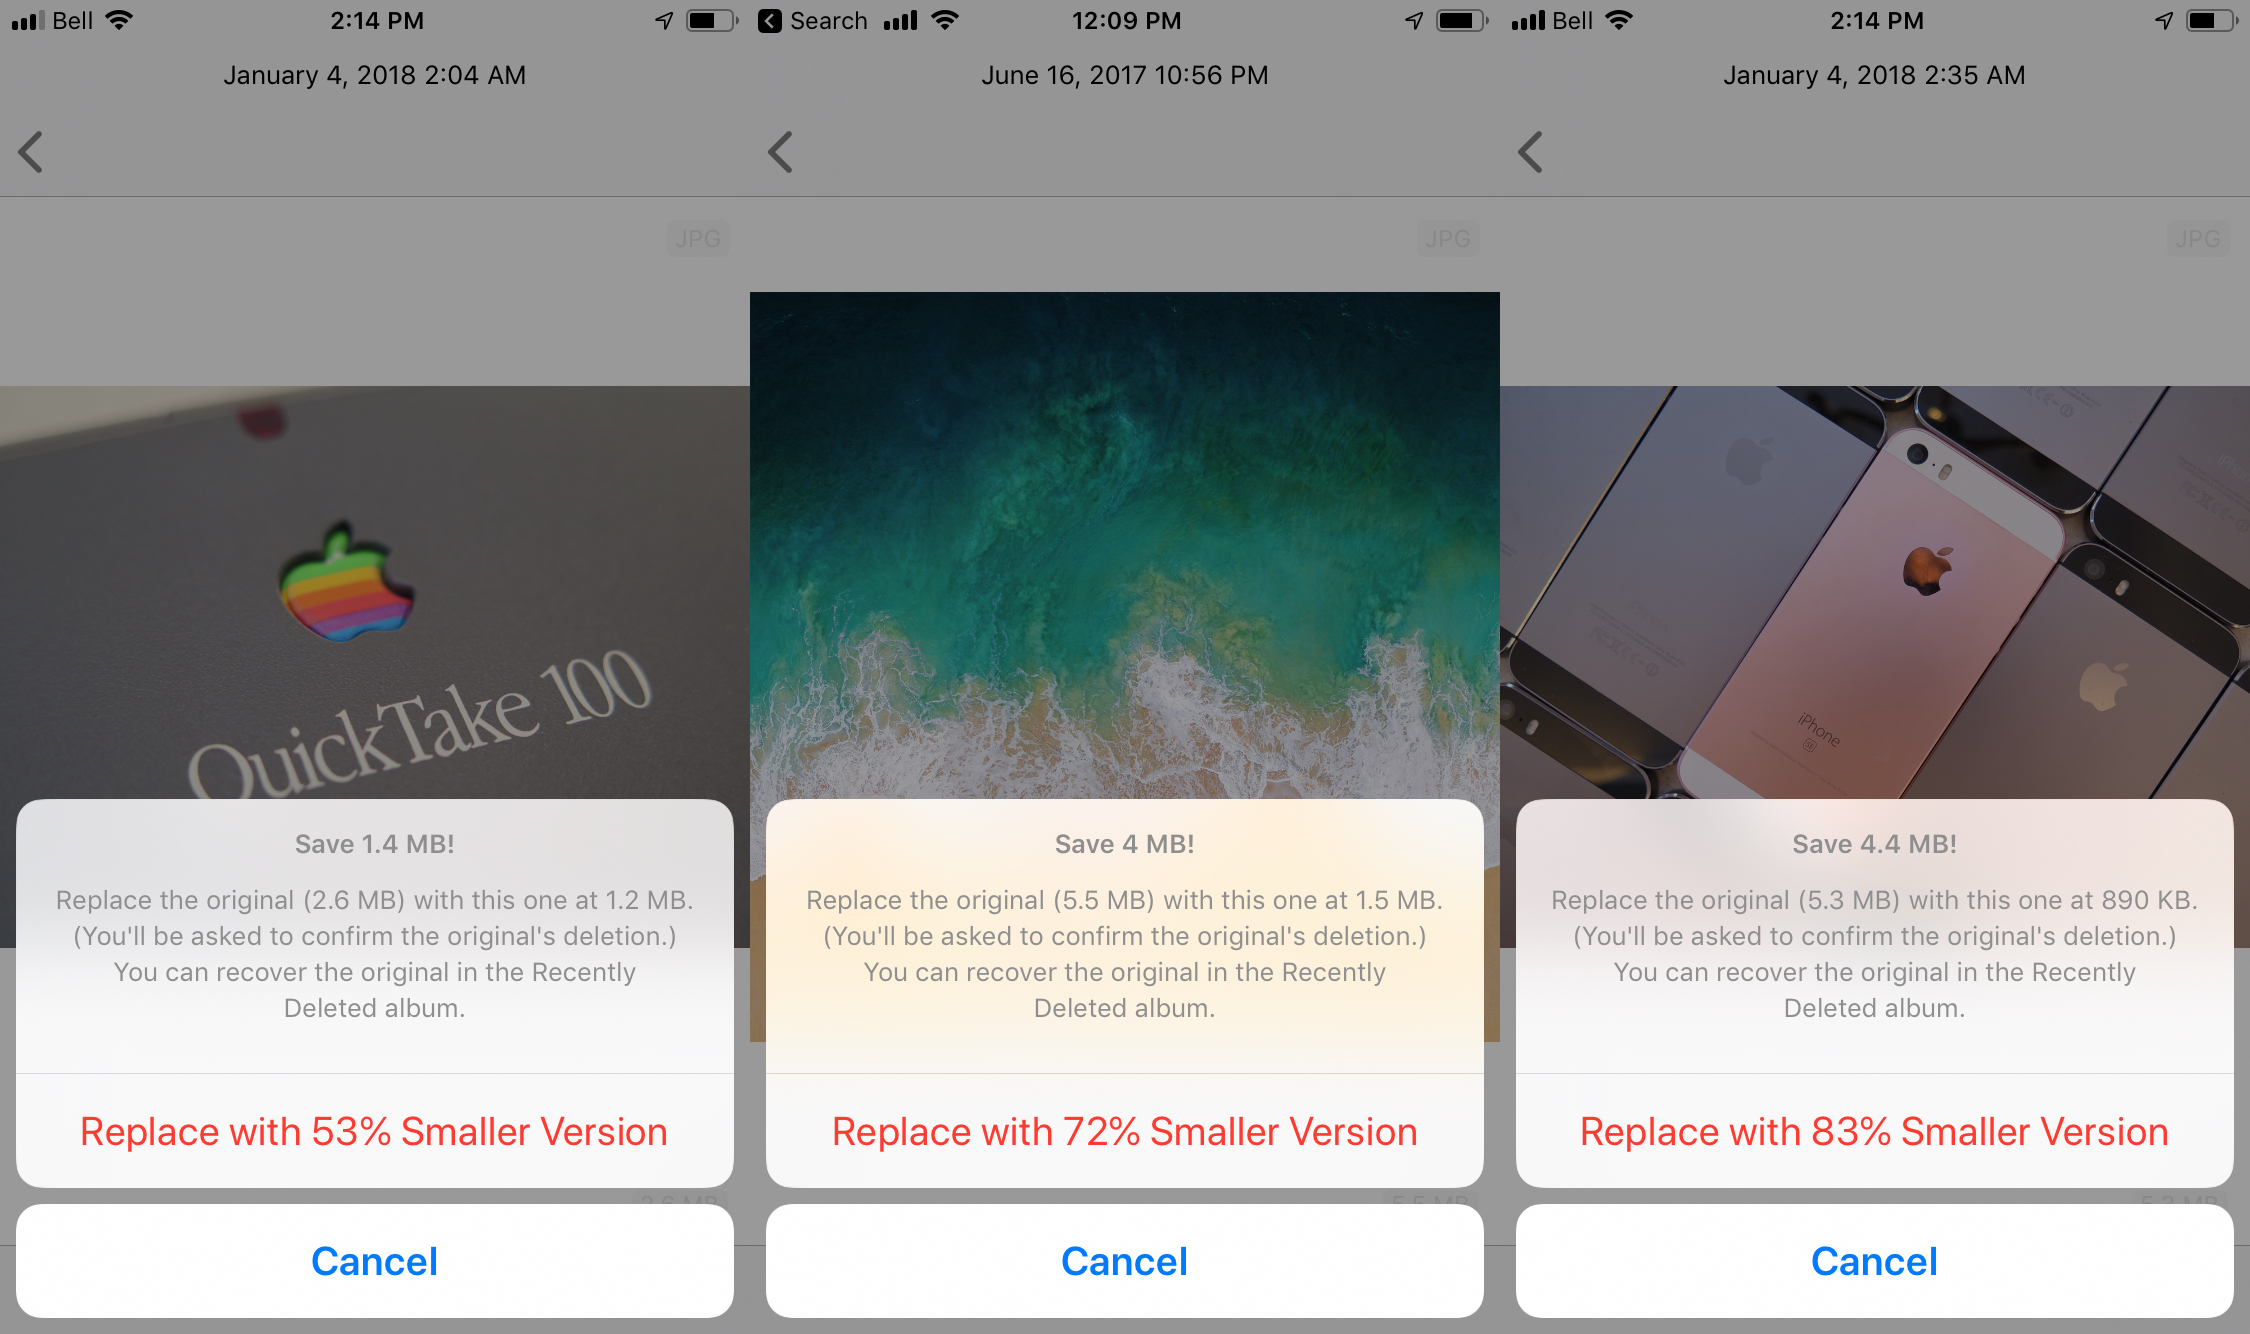 Half App For iOS Lets You Save Space On Photos Without